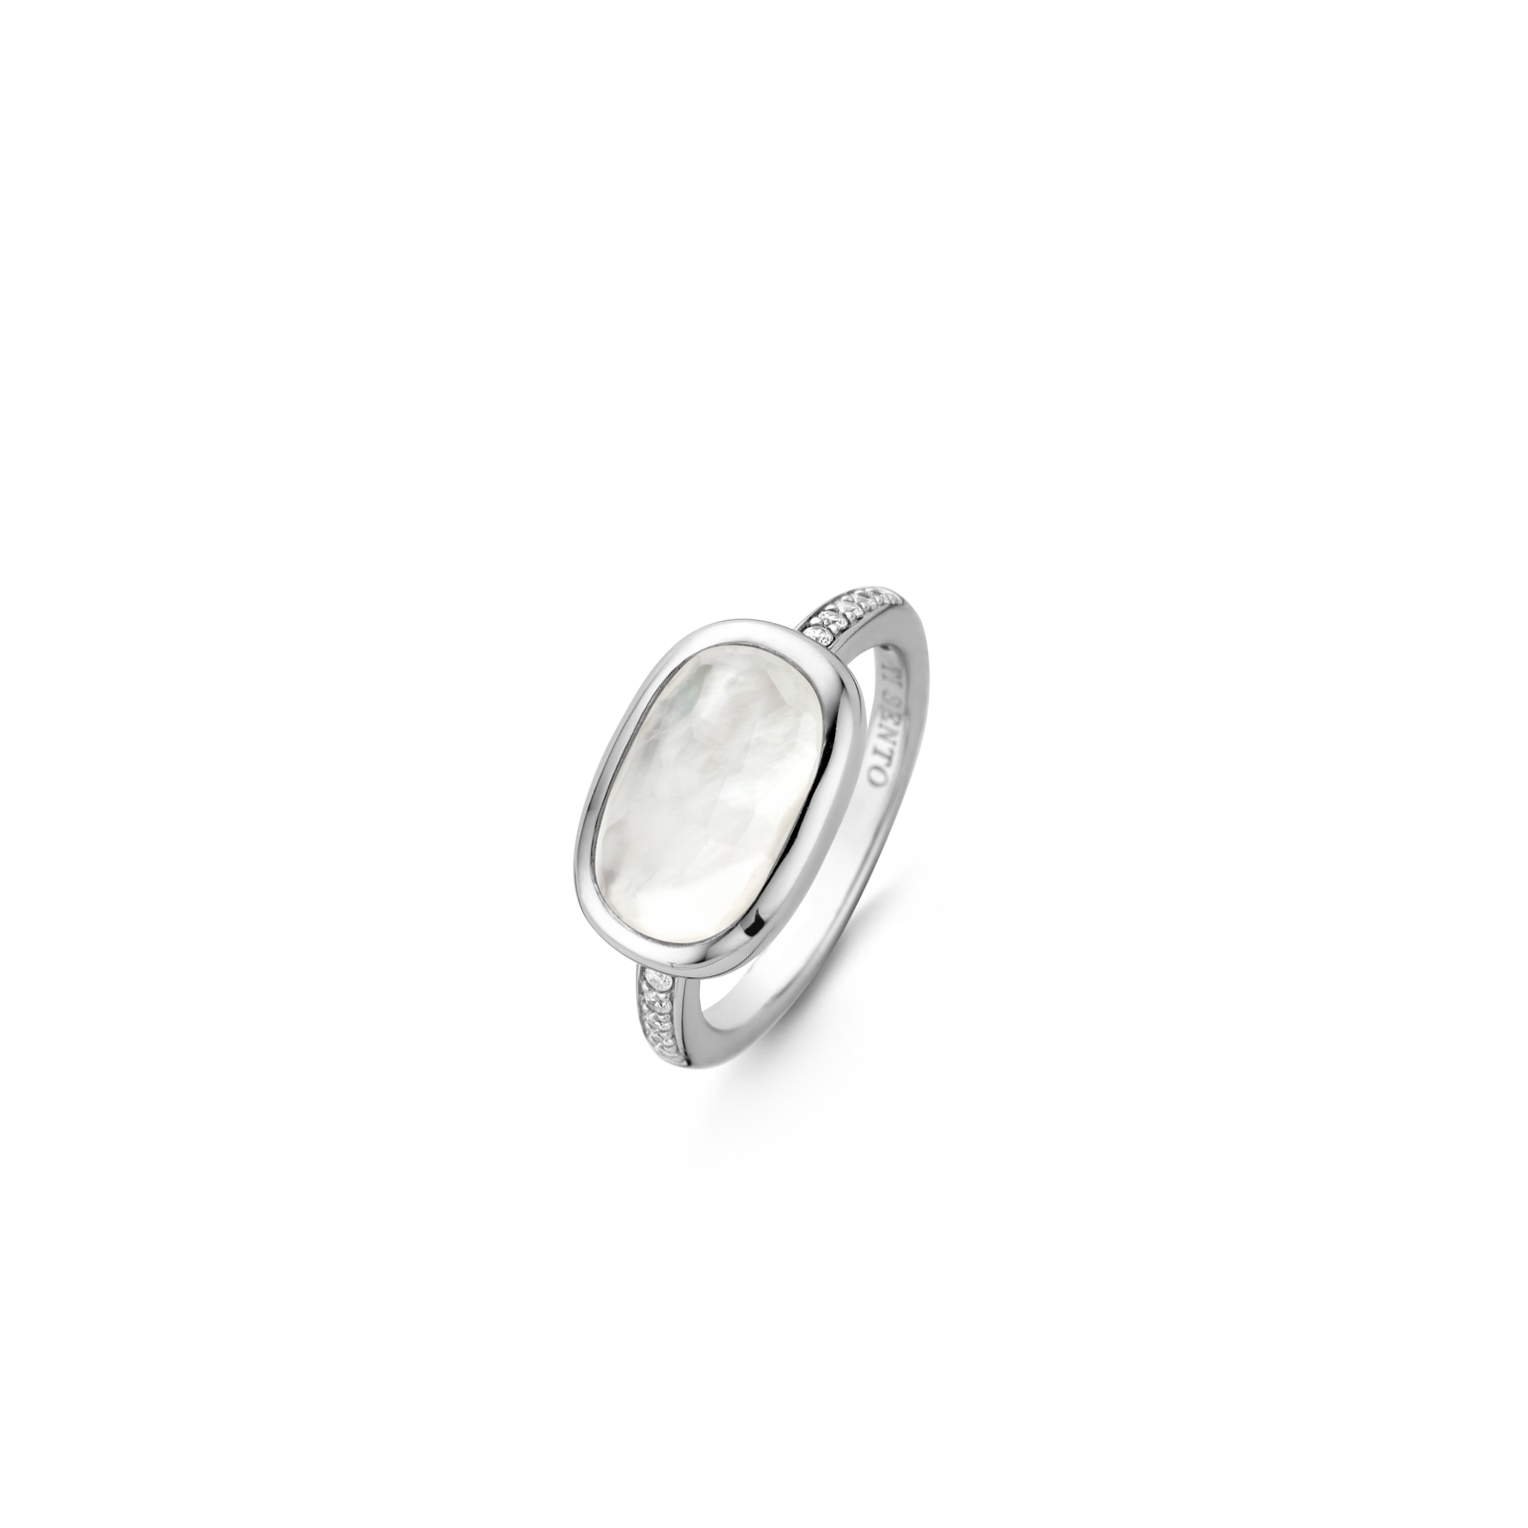 Silver drawing ring. Ti sento milano mw